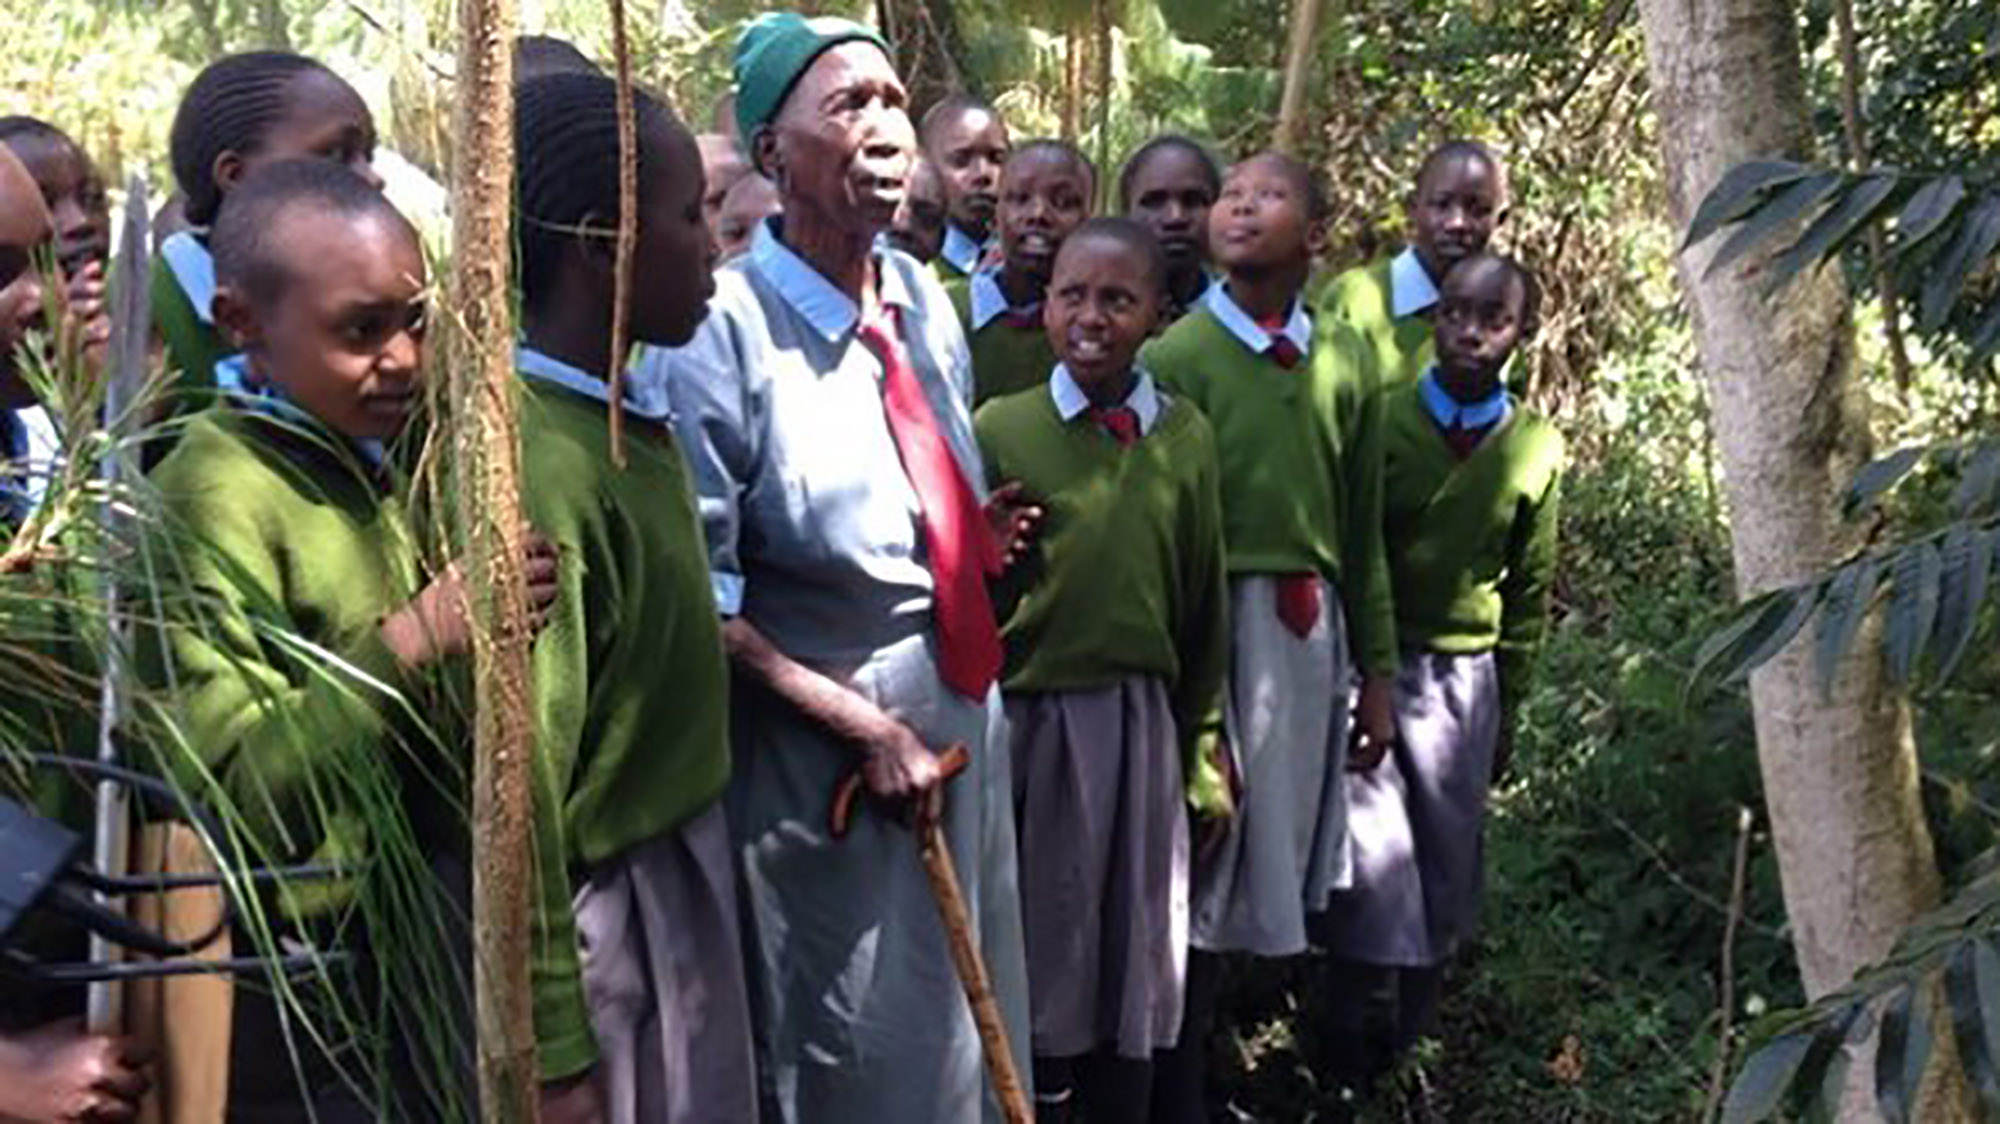 90-year-old woman goes to school to learn to read and write with her great-great-grandchildren